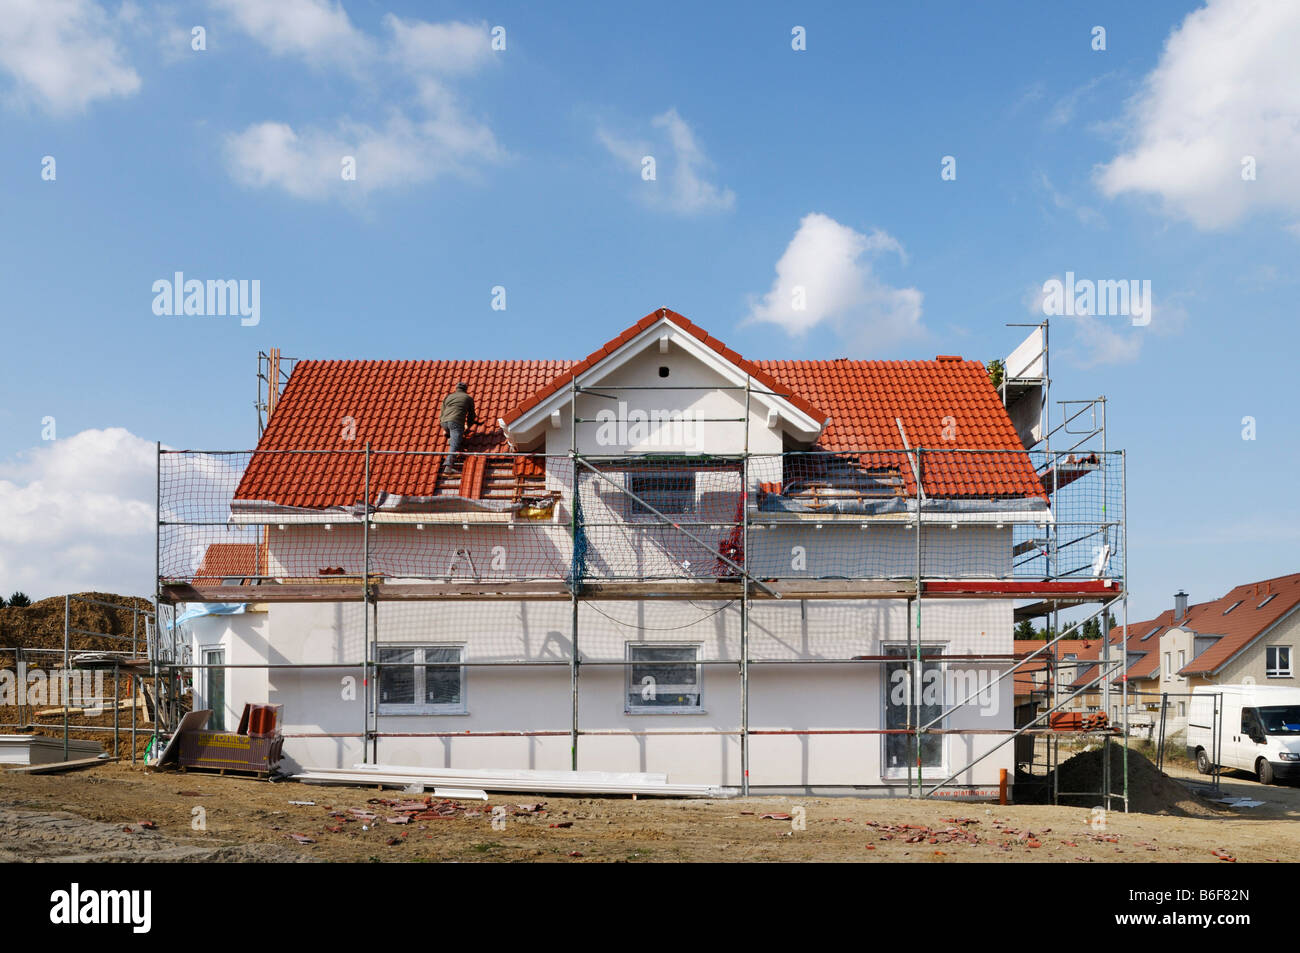 Newly constructed house with scaffolding, roofer laying roof tiles, Mettmann, North Rhine-Westphalia, Germany, Europe - Stock Image